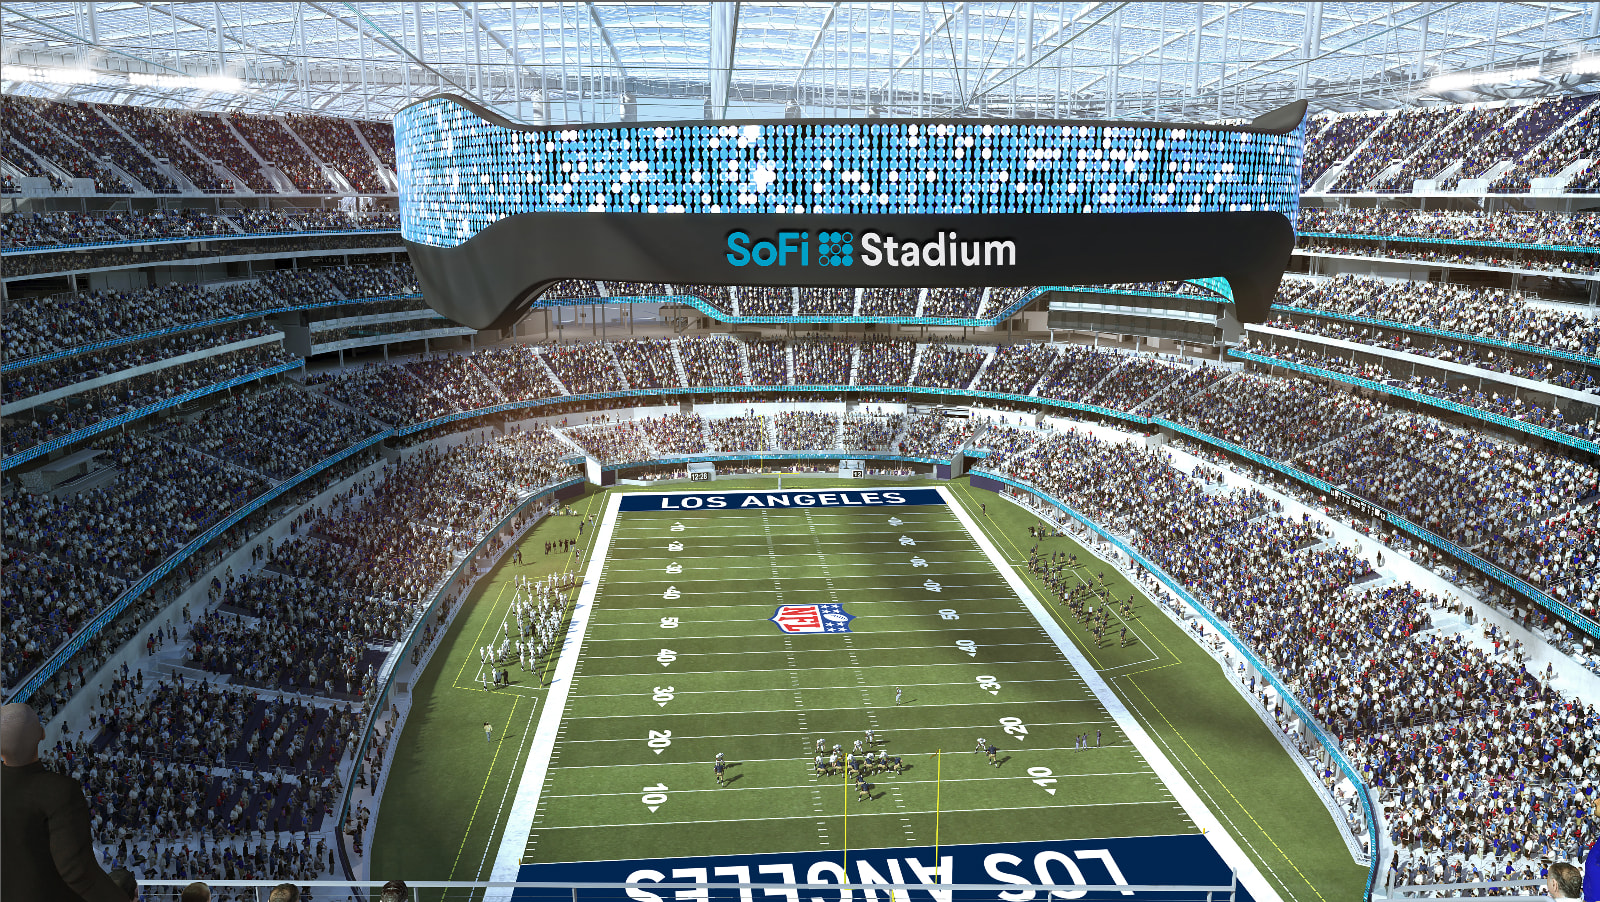 SoFi naming rights for Los Angeles stadium for the Rams and Chargers